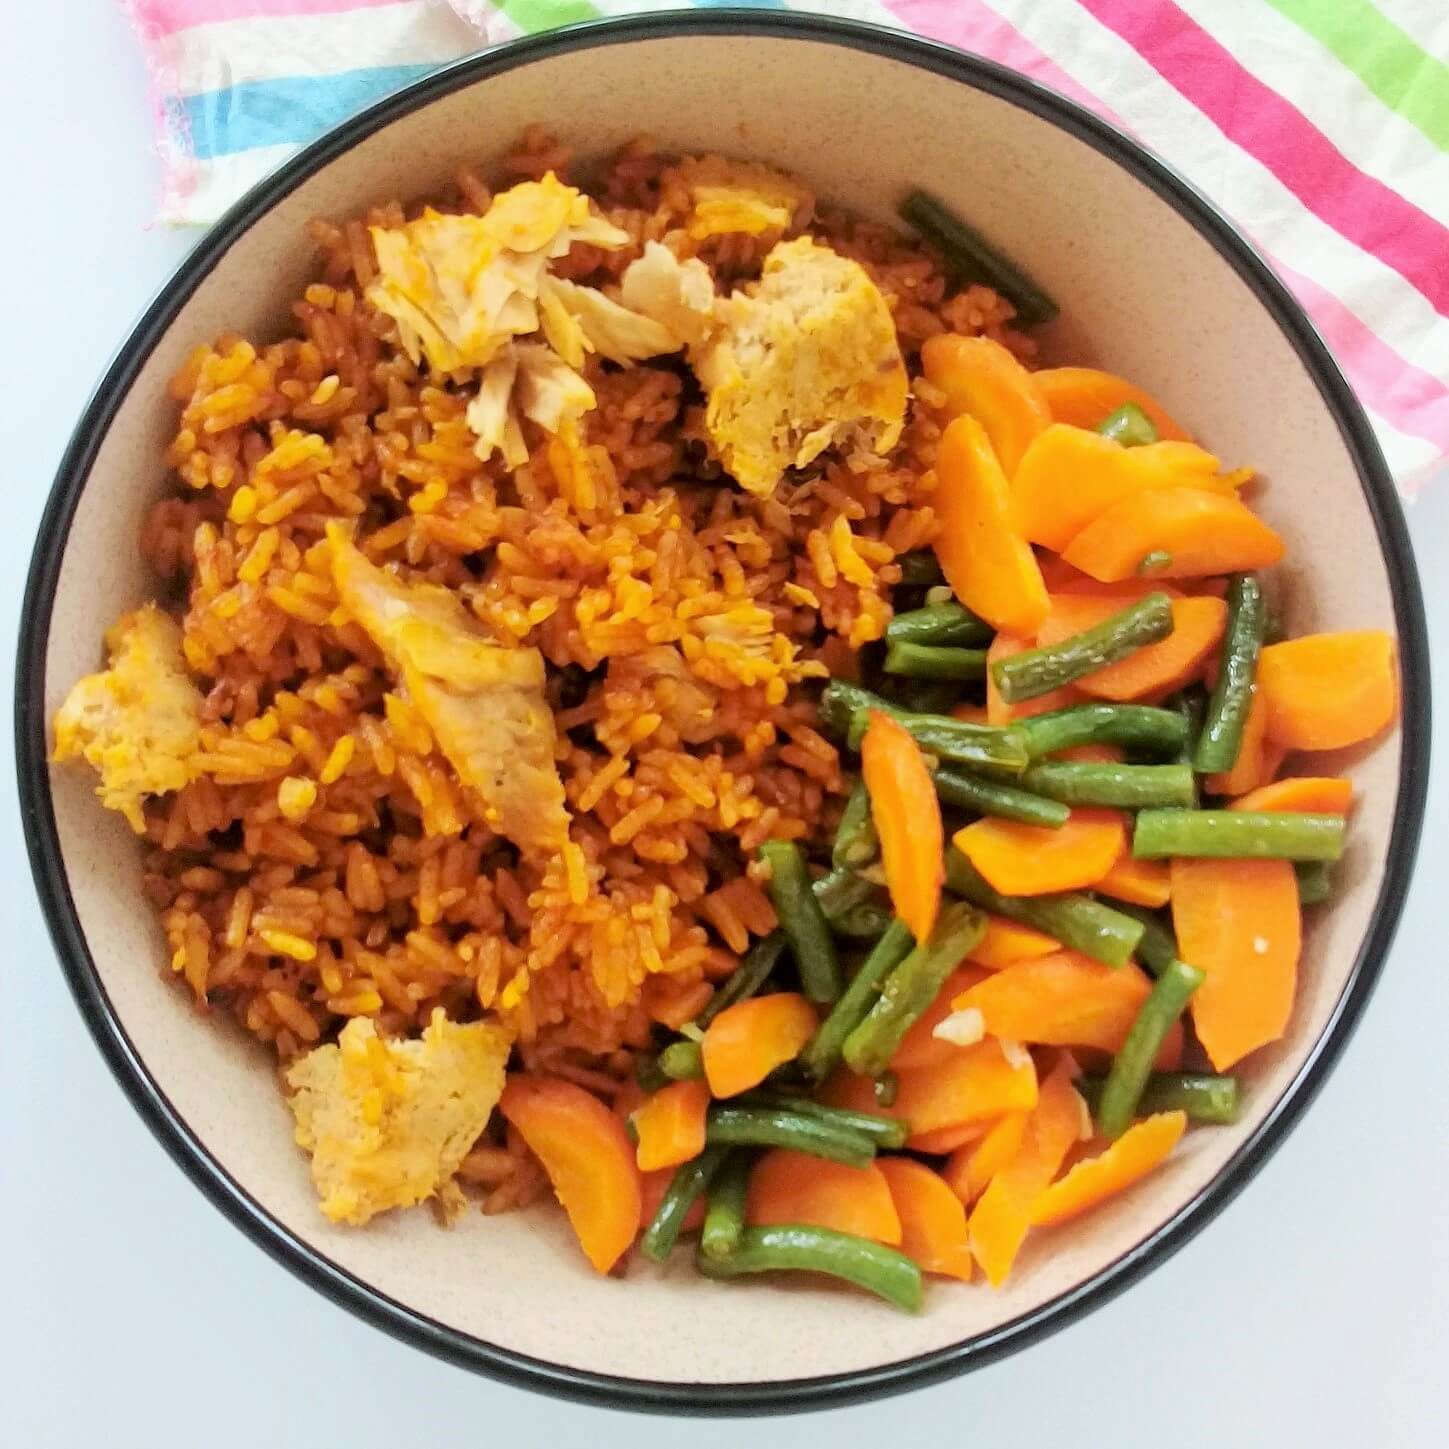 Jollof with tuna, carrots and green beans